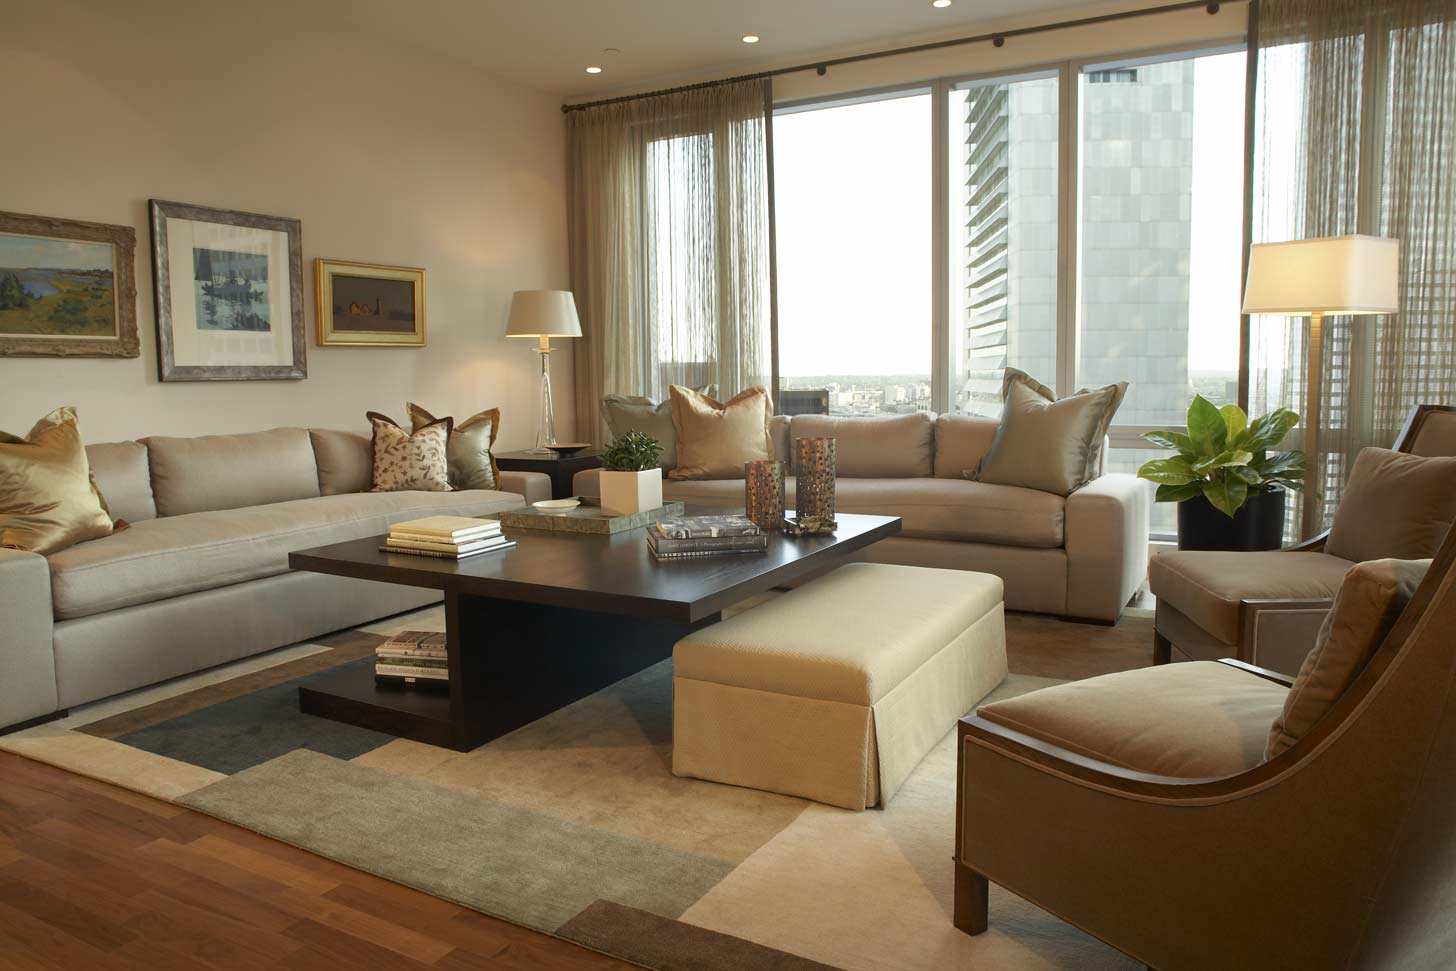 Condo Residence - Intercontinental - Boston, MA